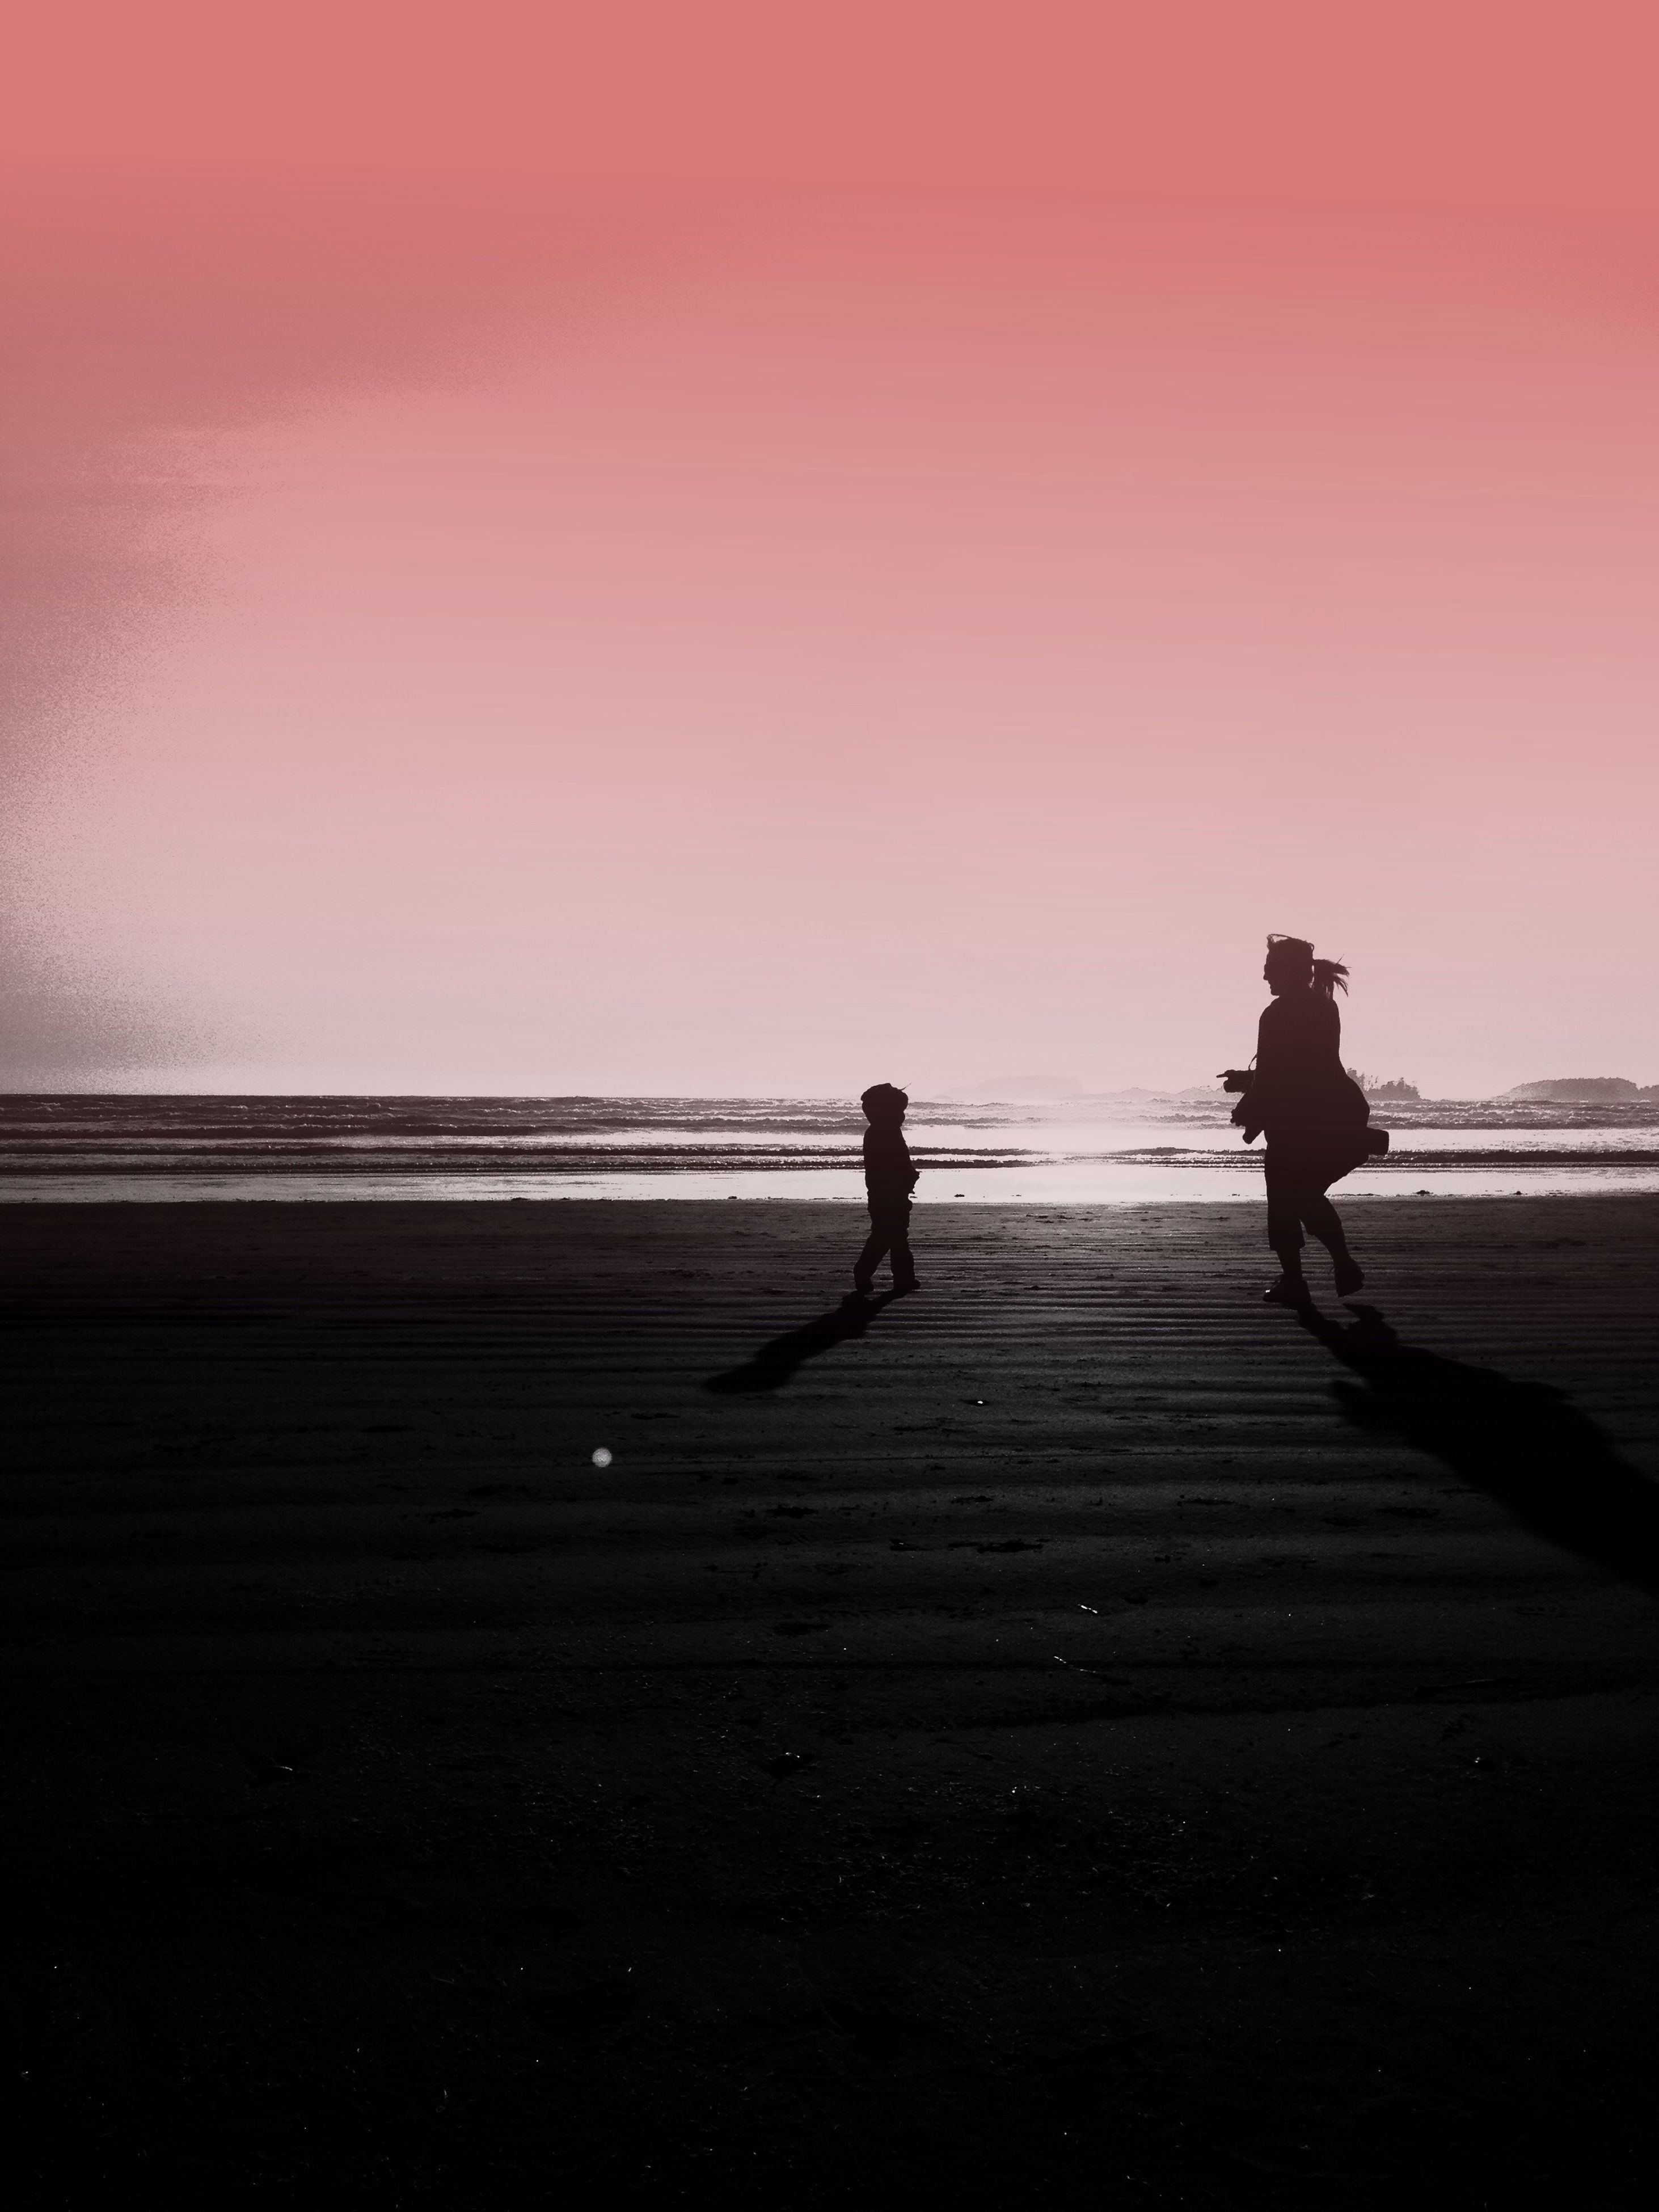 sea, sunset, horizon over water, silhouette, water, beach, lifestyles, leisure activity, copy space, men, shore, tranquil scene, clear sky, standing, person, sky, tranquility, scenics